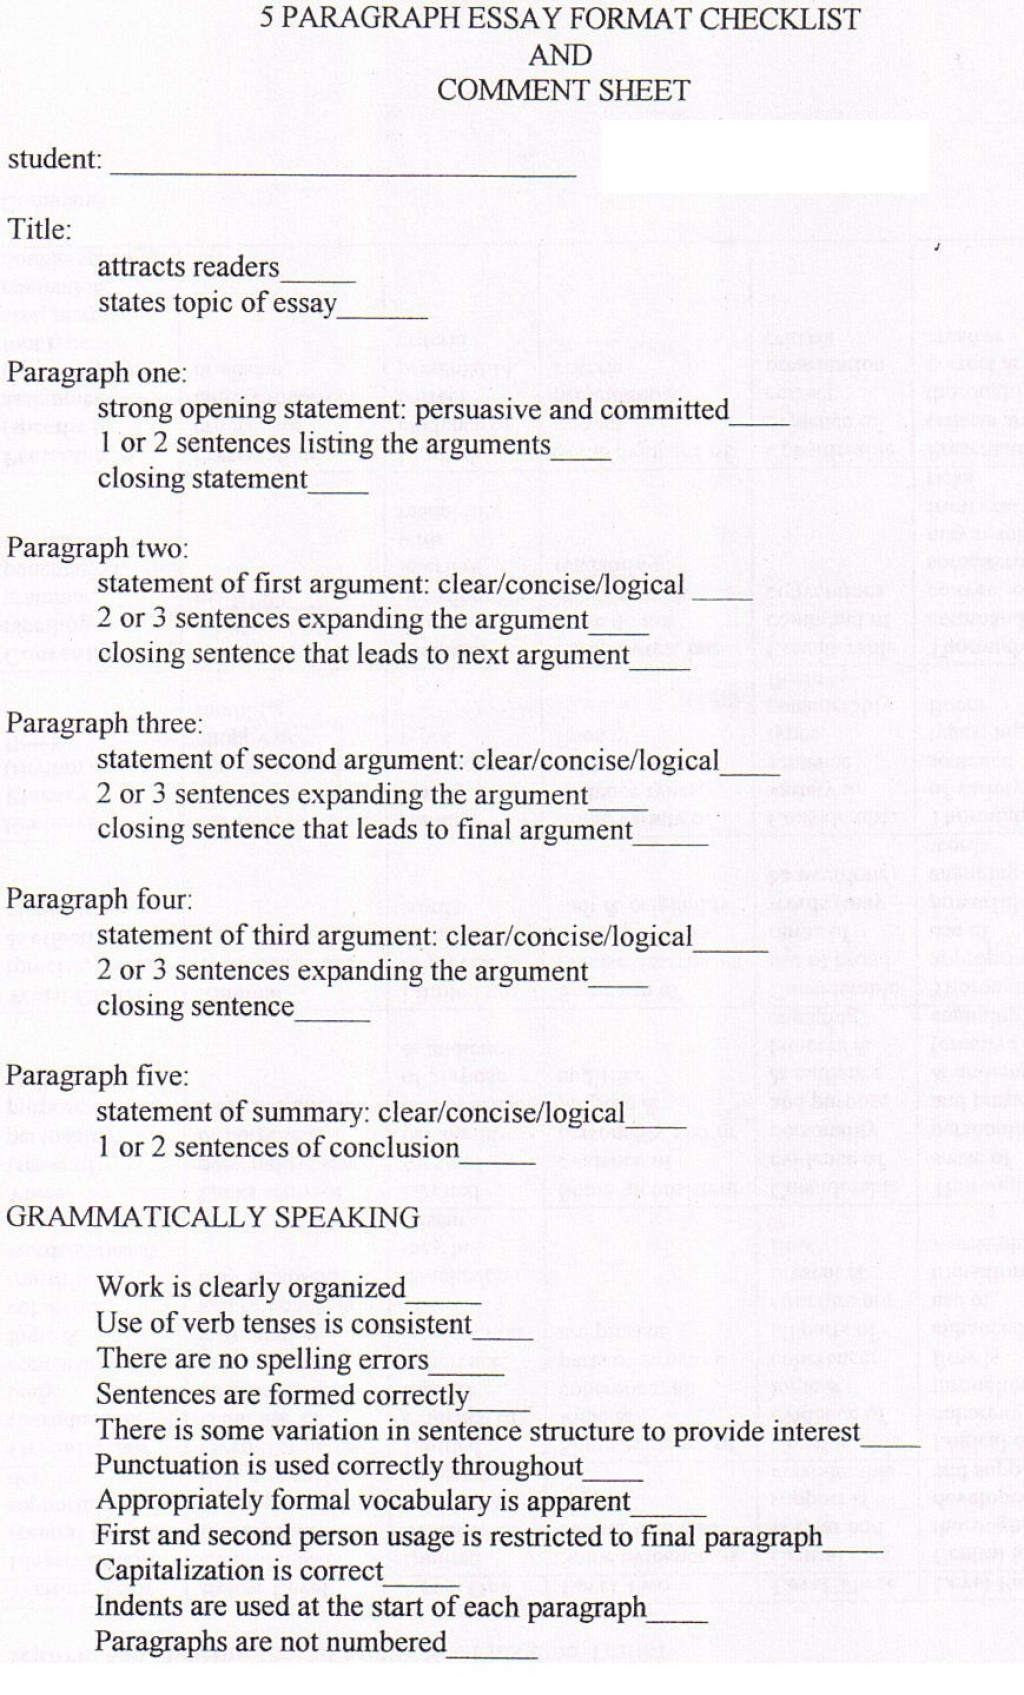 009 5paragraphchecklist Essay On Bullying Amazing In Afrikaans Pdf Large